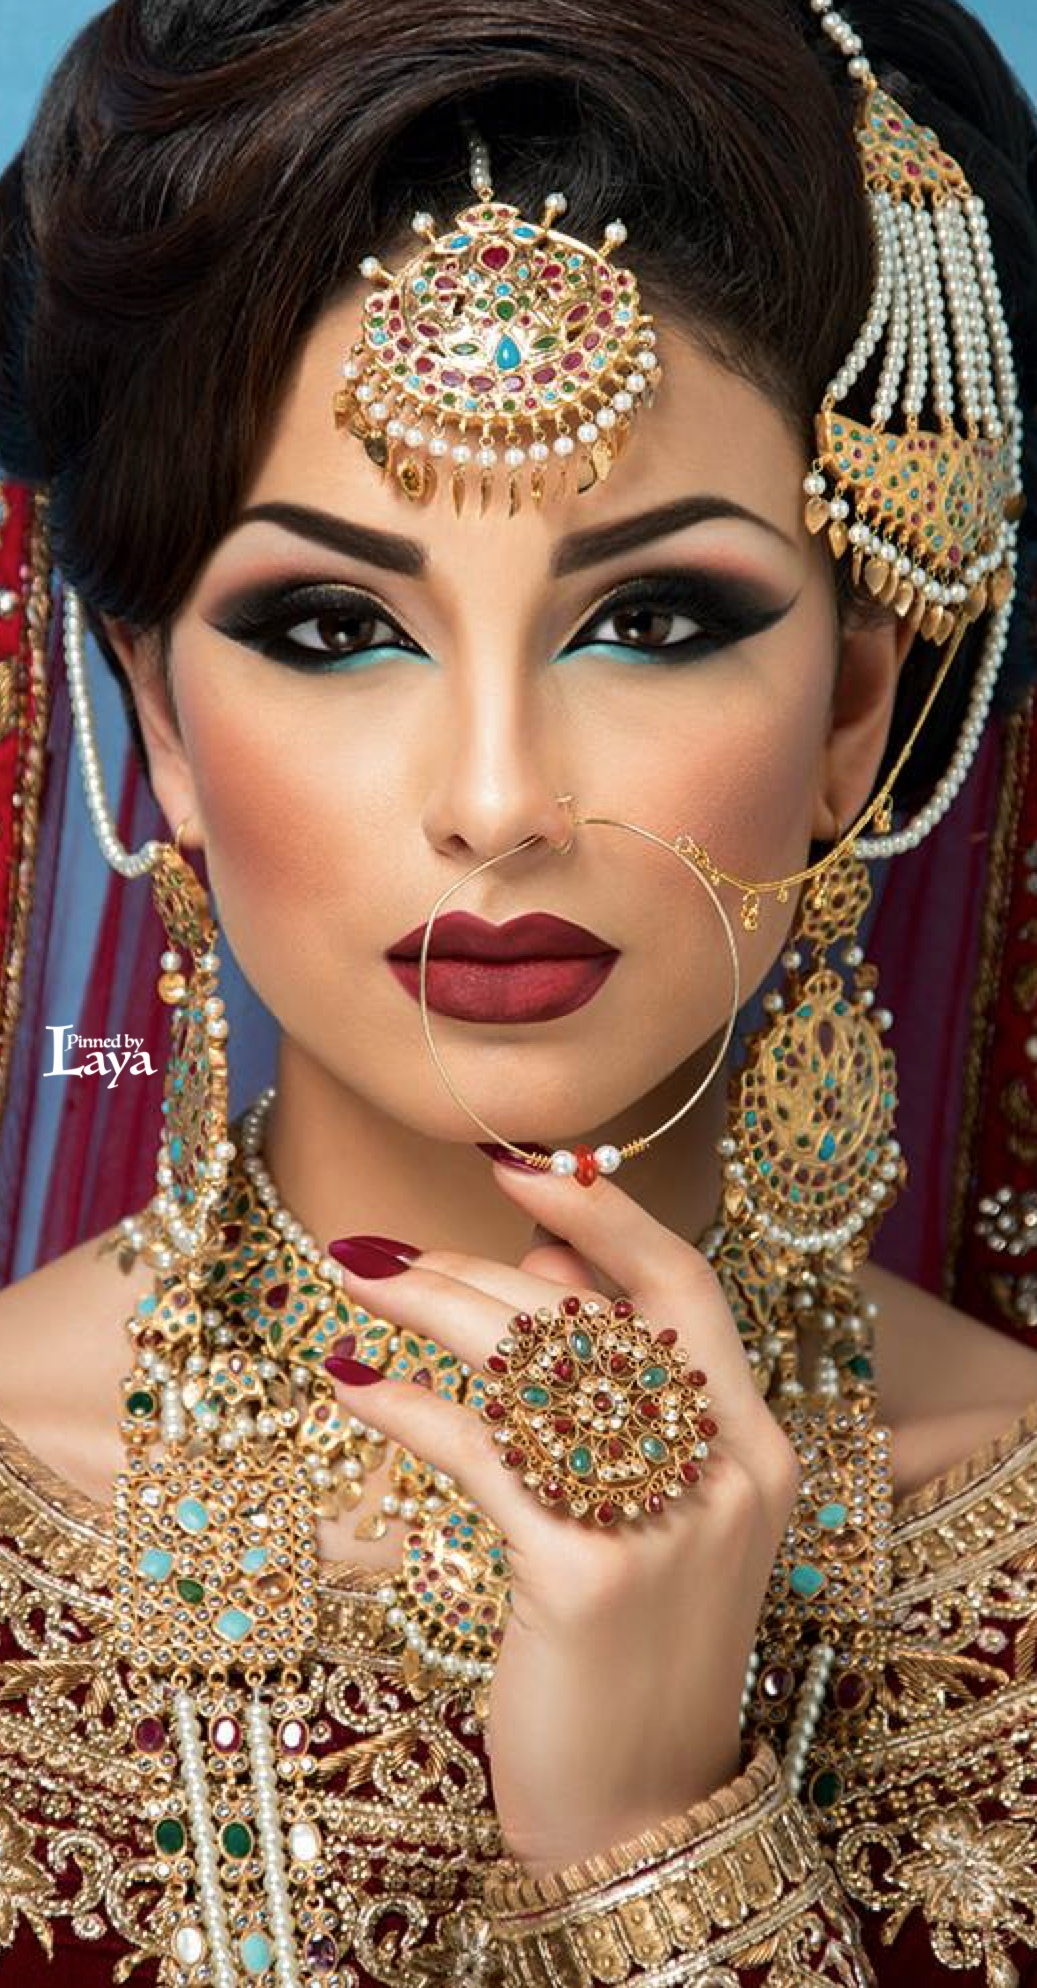 Pin By Label Shrena Hirawat On Beauty, Hair, Makeup | Pinterest intended for Indian Bride Makeup Pics